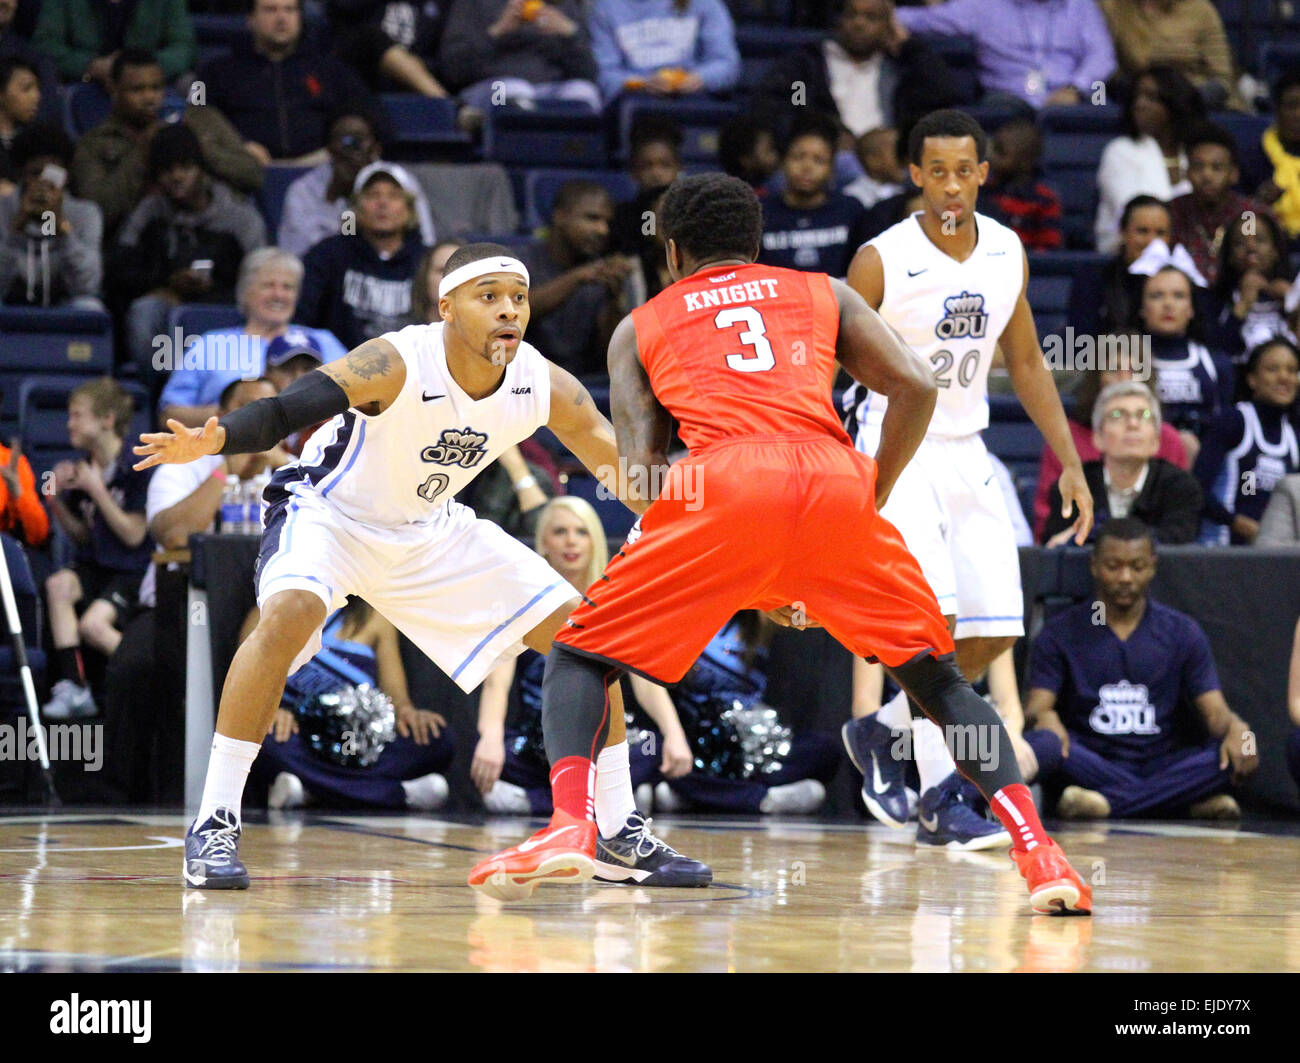 Norfolk, VA., USA. 23rd March, 2015. NCAA Basketball 2015: Illinois State Redbirds guard Daishon Knight (3) is defended - Stock Image